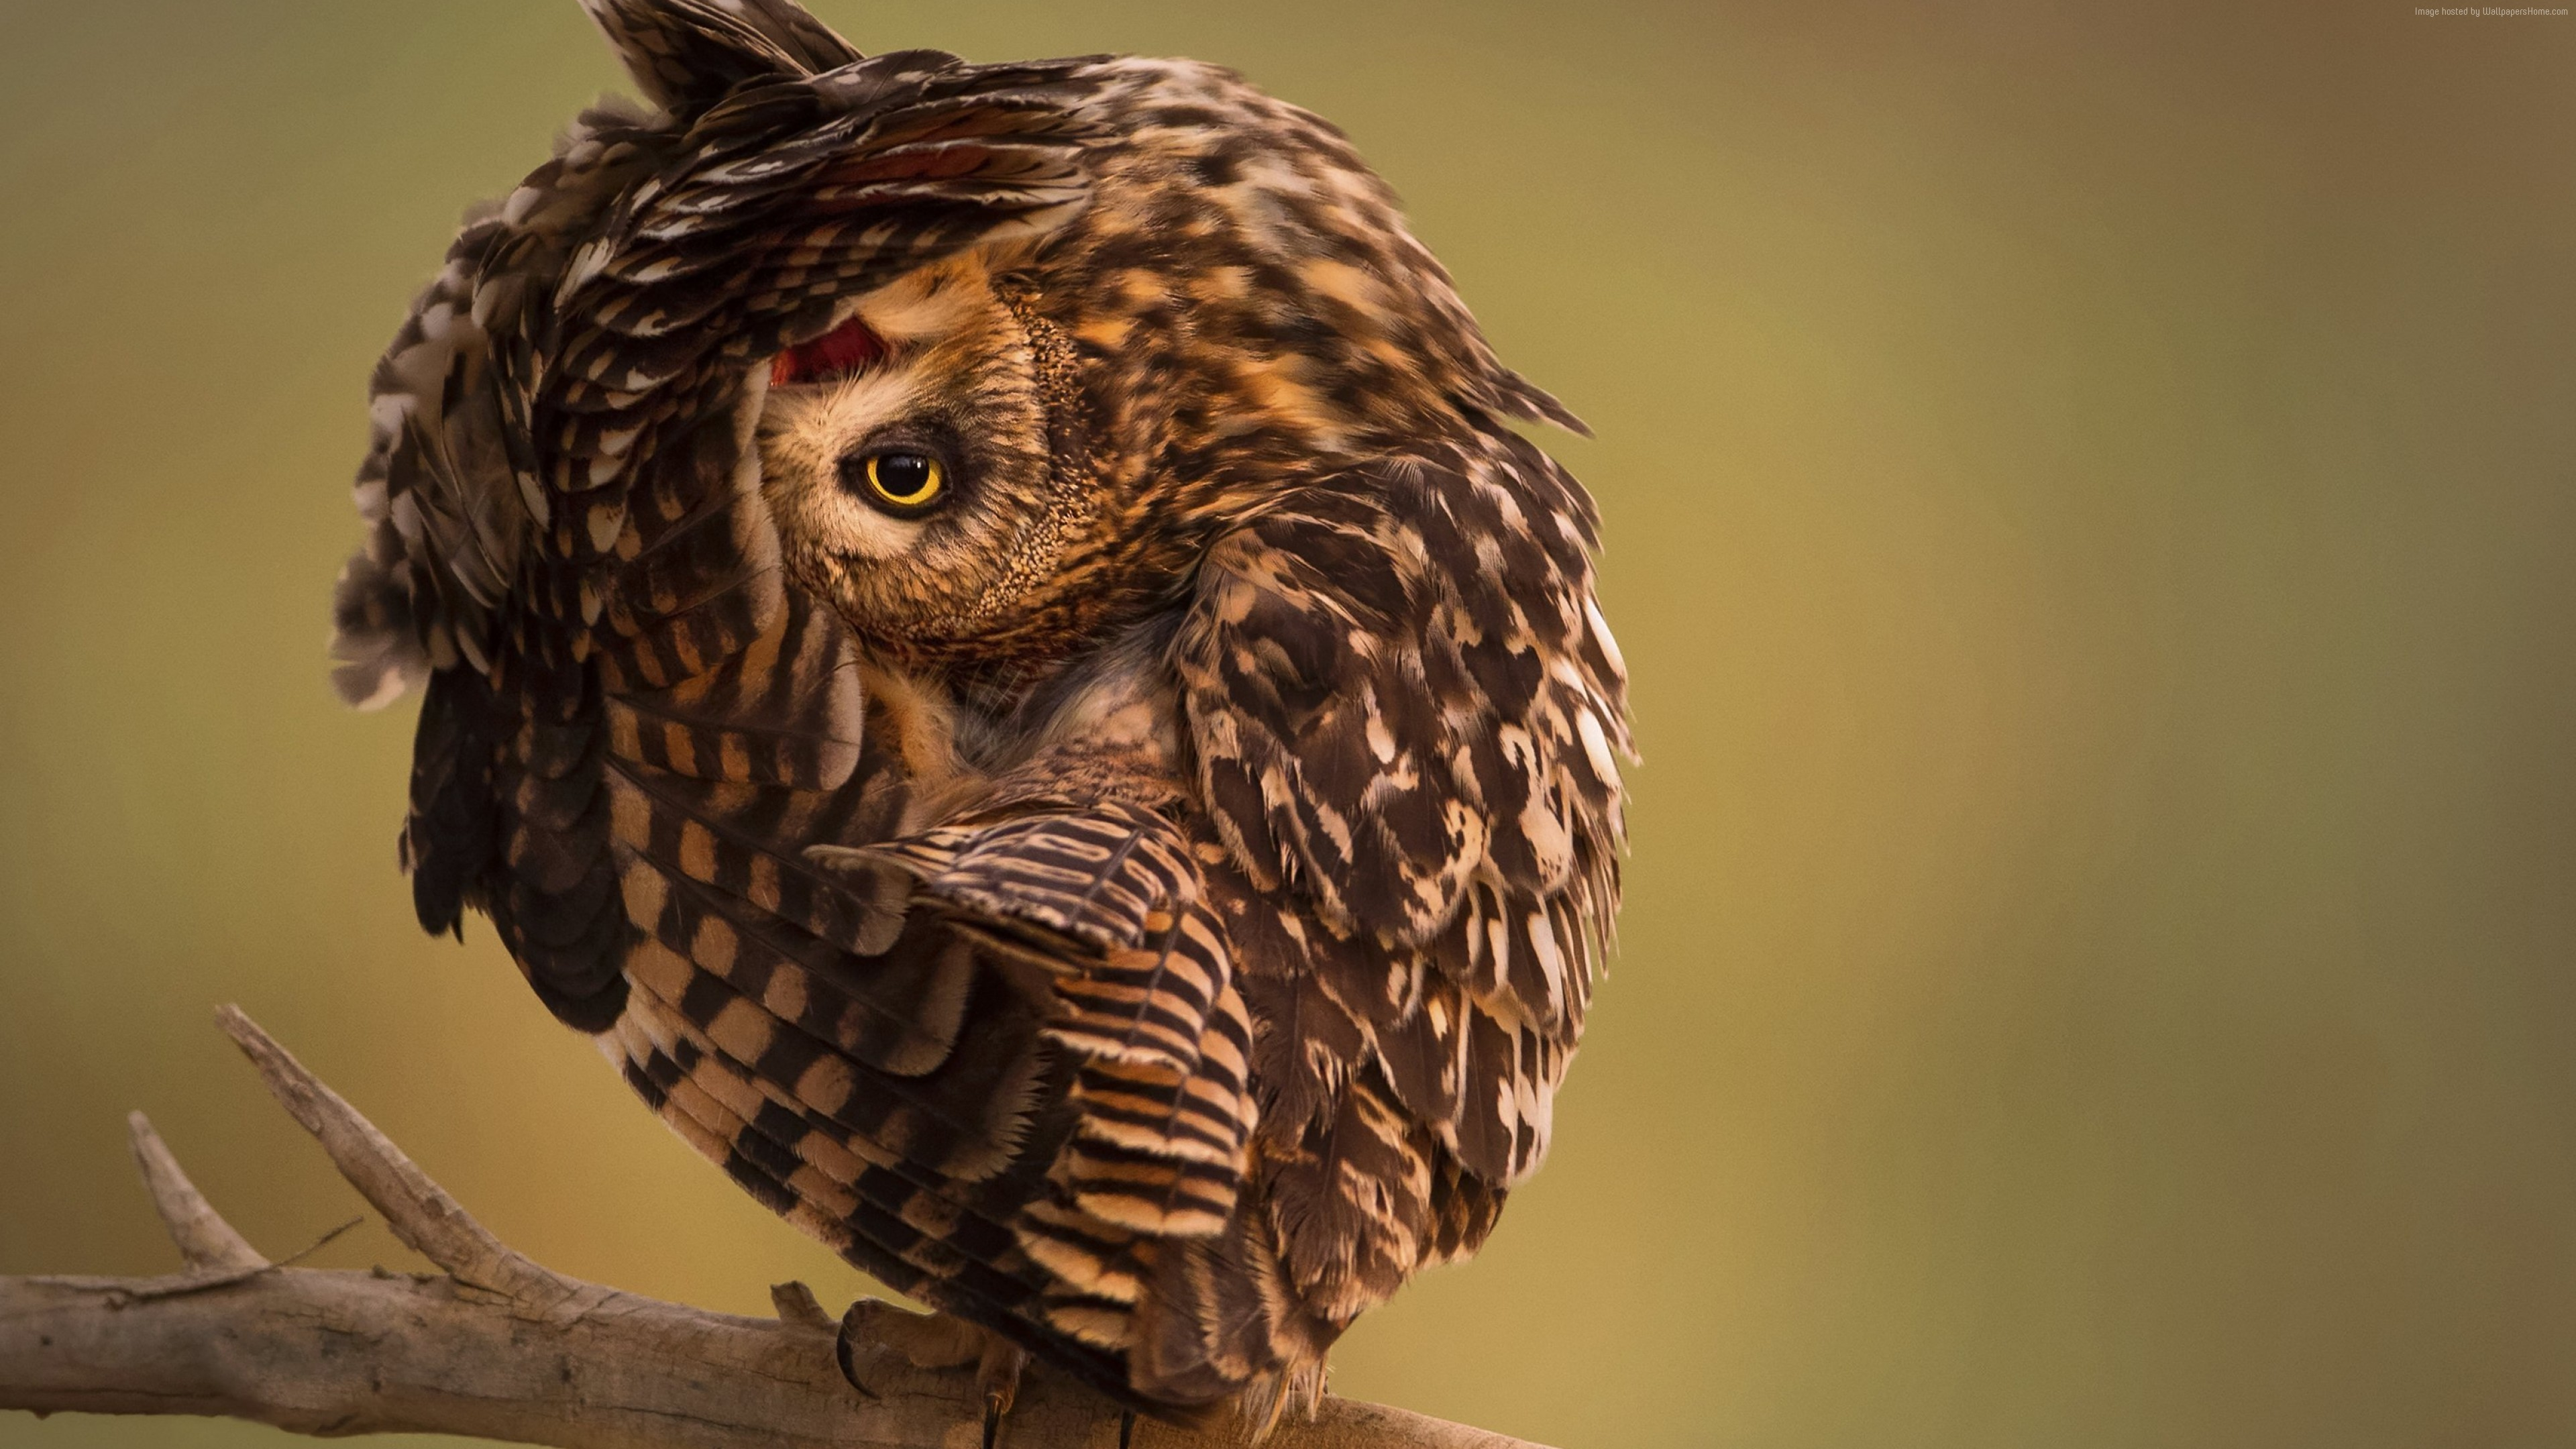 Wallpaper National Geographic, 4k, HD wallpaper, Owl, Funny, Animals